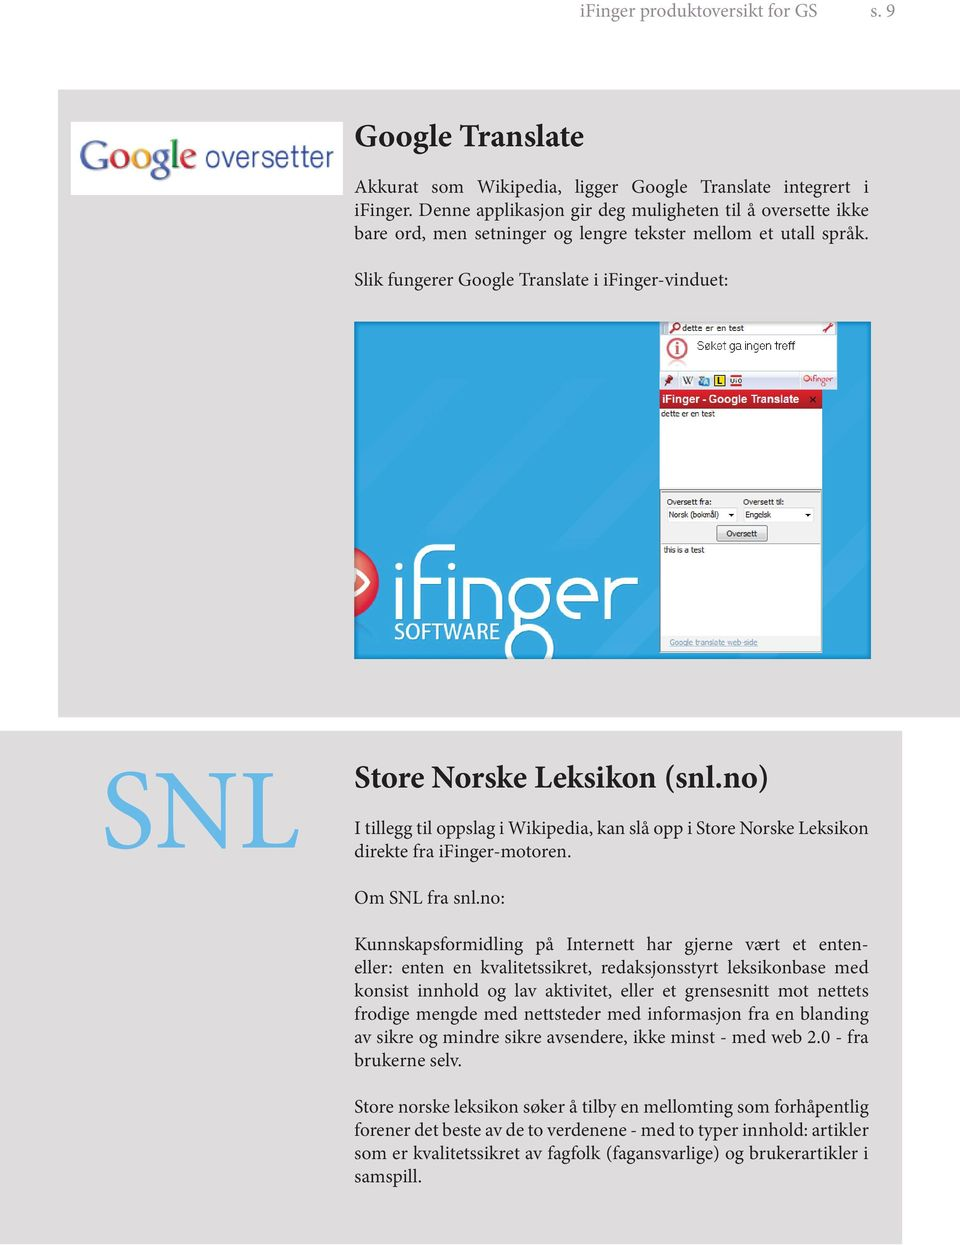 Norsk nynorsk oversetter google